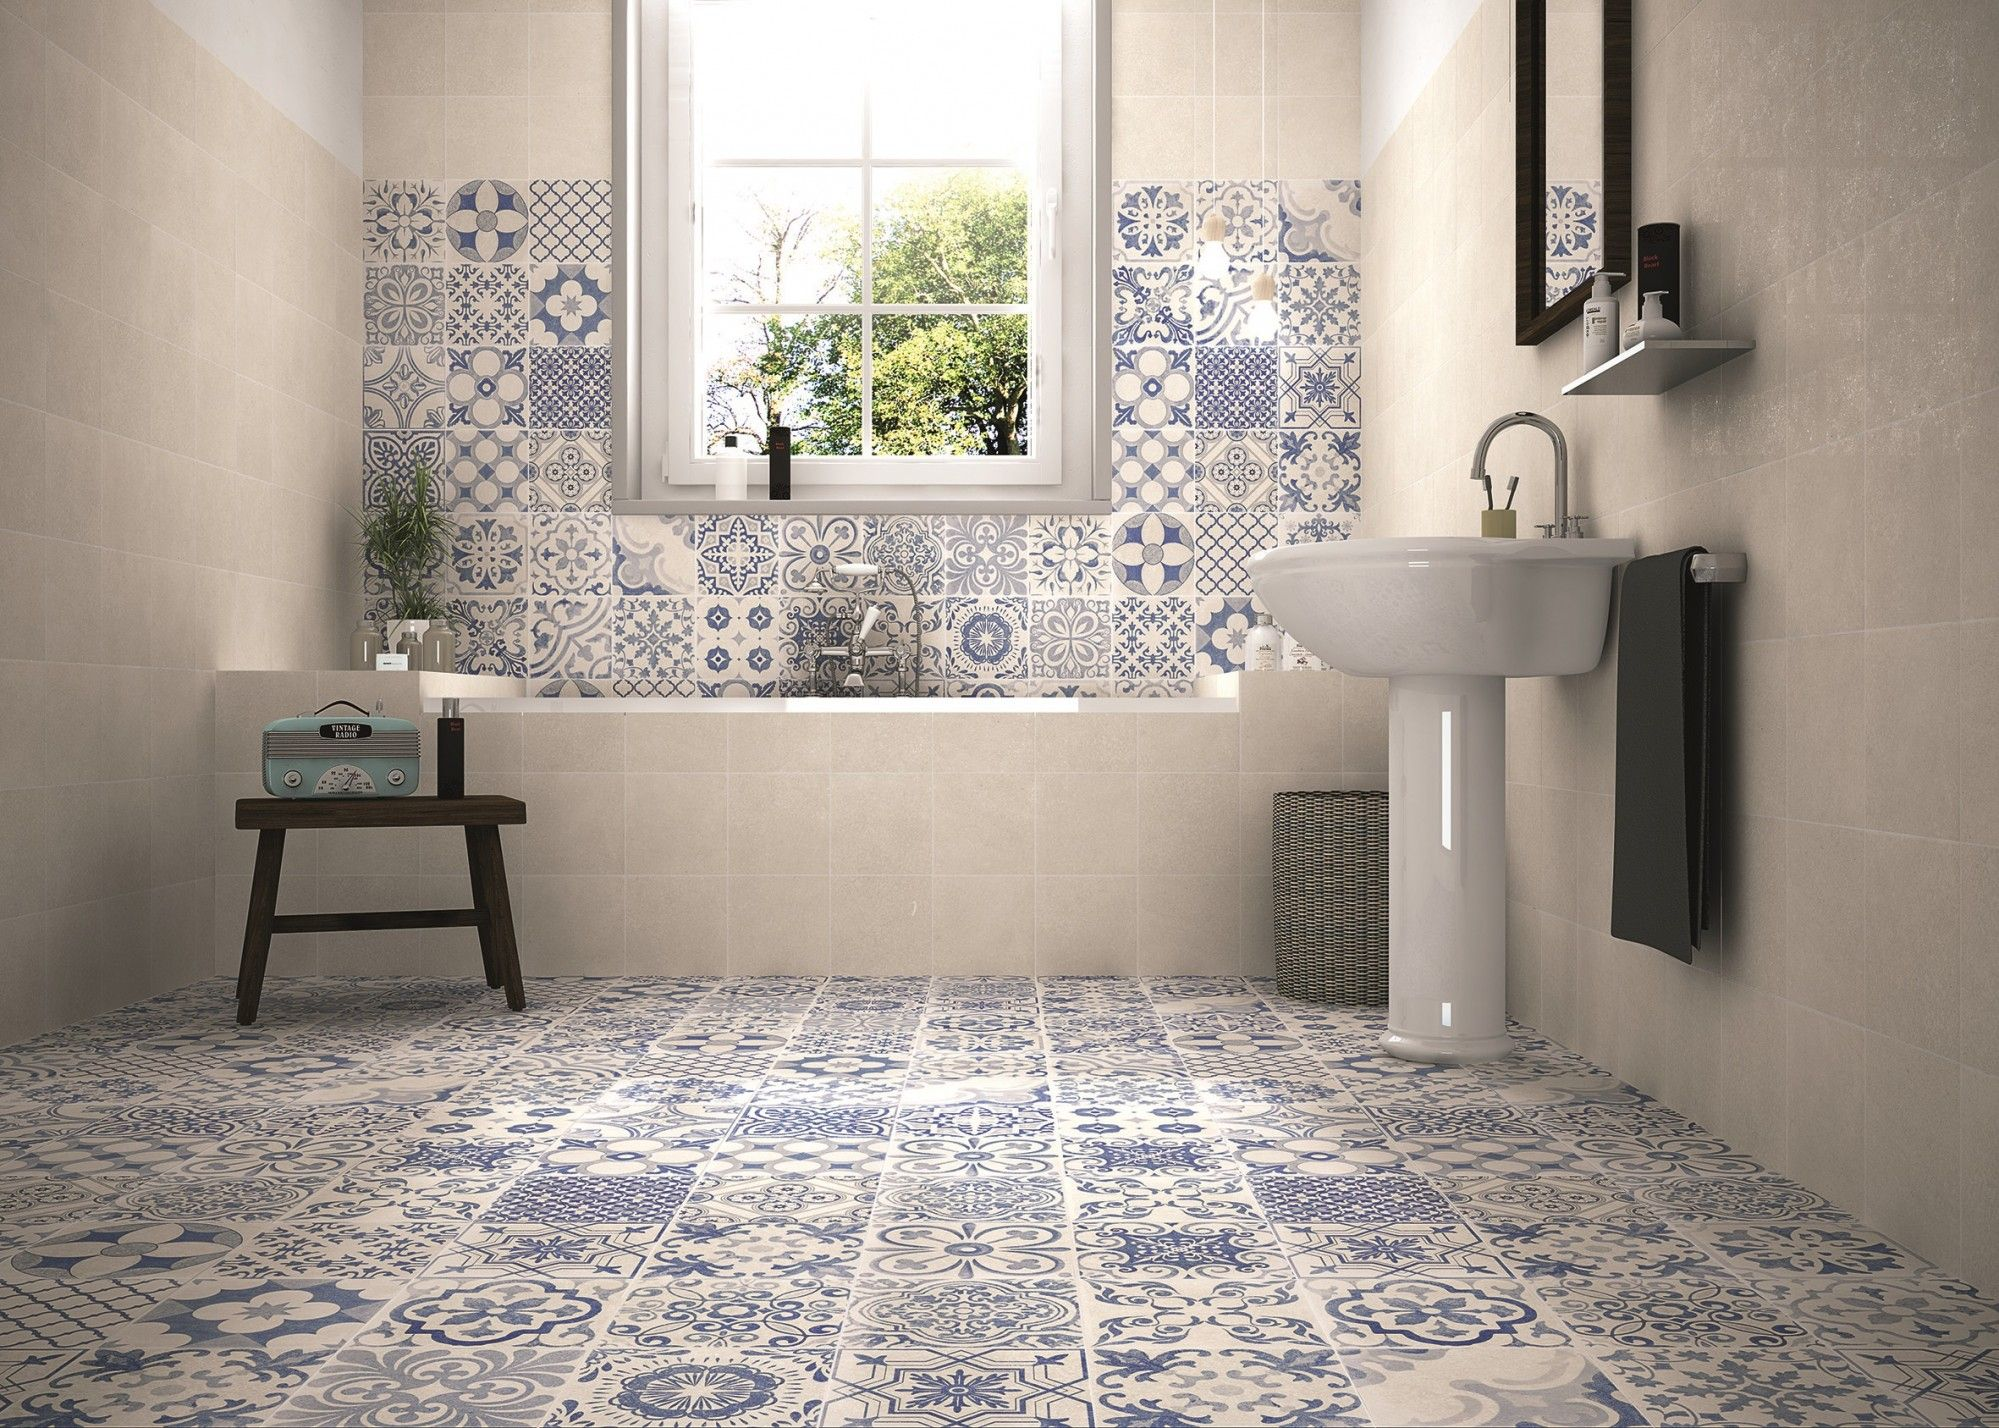 Skyros Delft Blue Wall and Floor Tile | Blue walls, Delft and Wall tiles